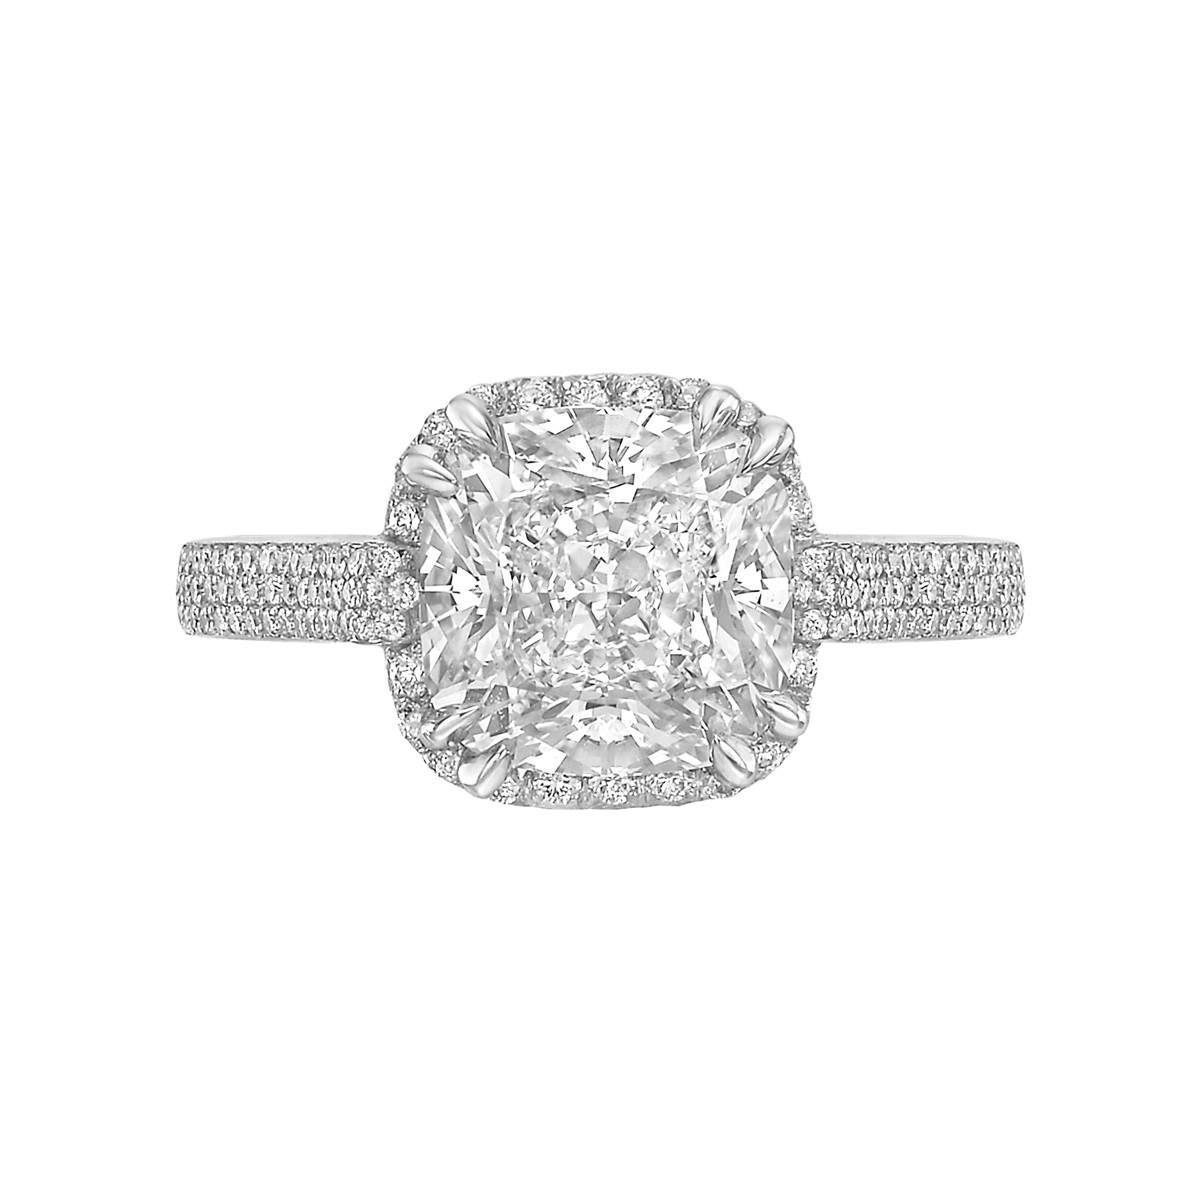 3.11ct Cushion-Cut Diamond Halo Ring